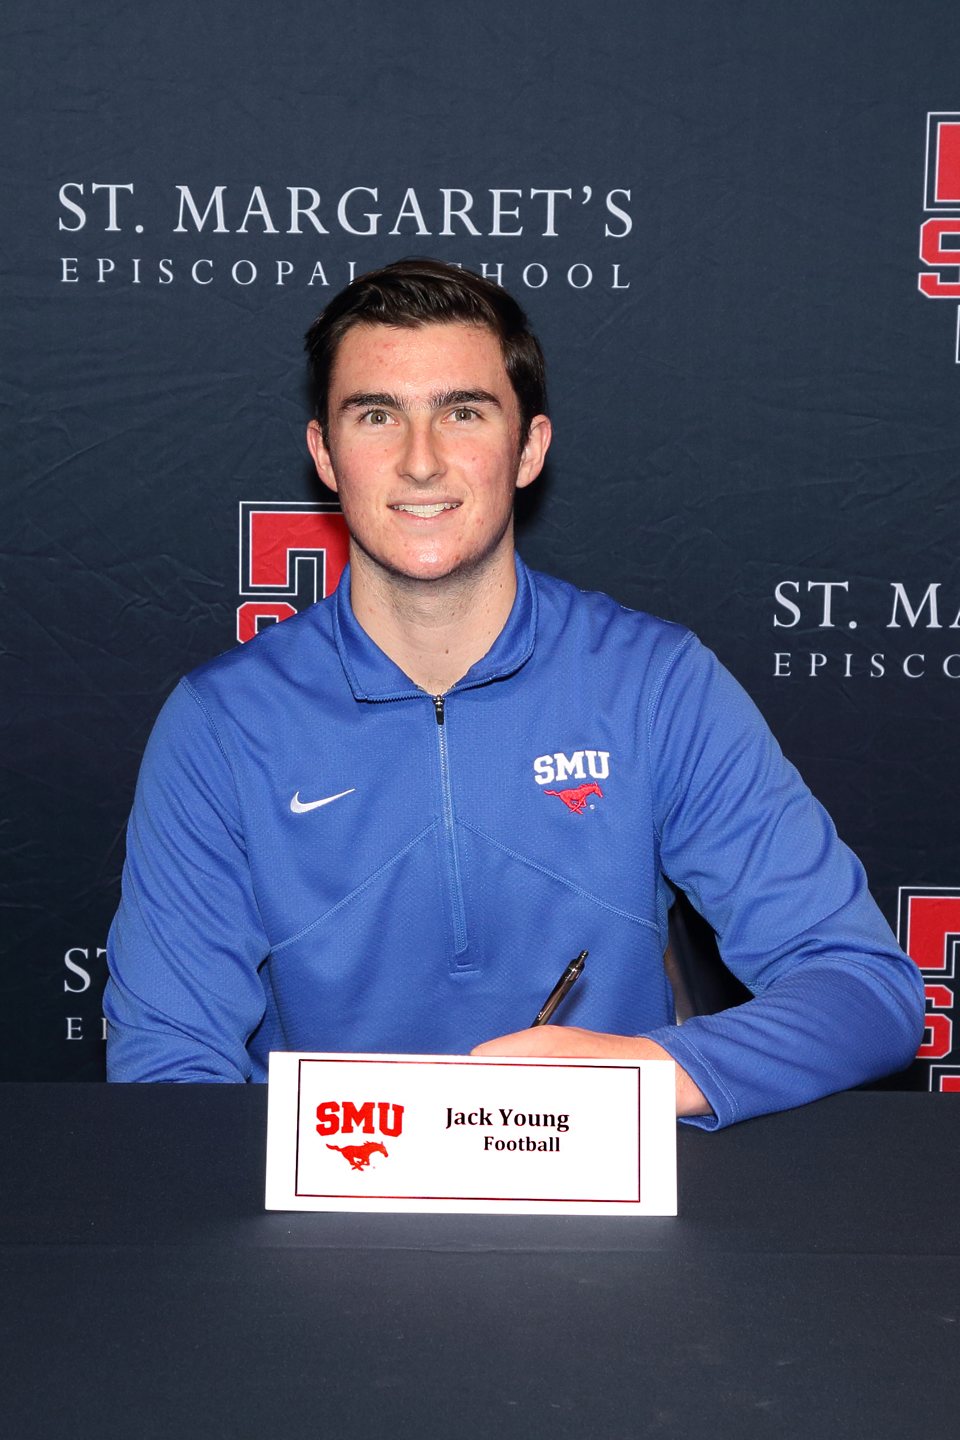 STMargarets_Jack_Young_SMU_Football2